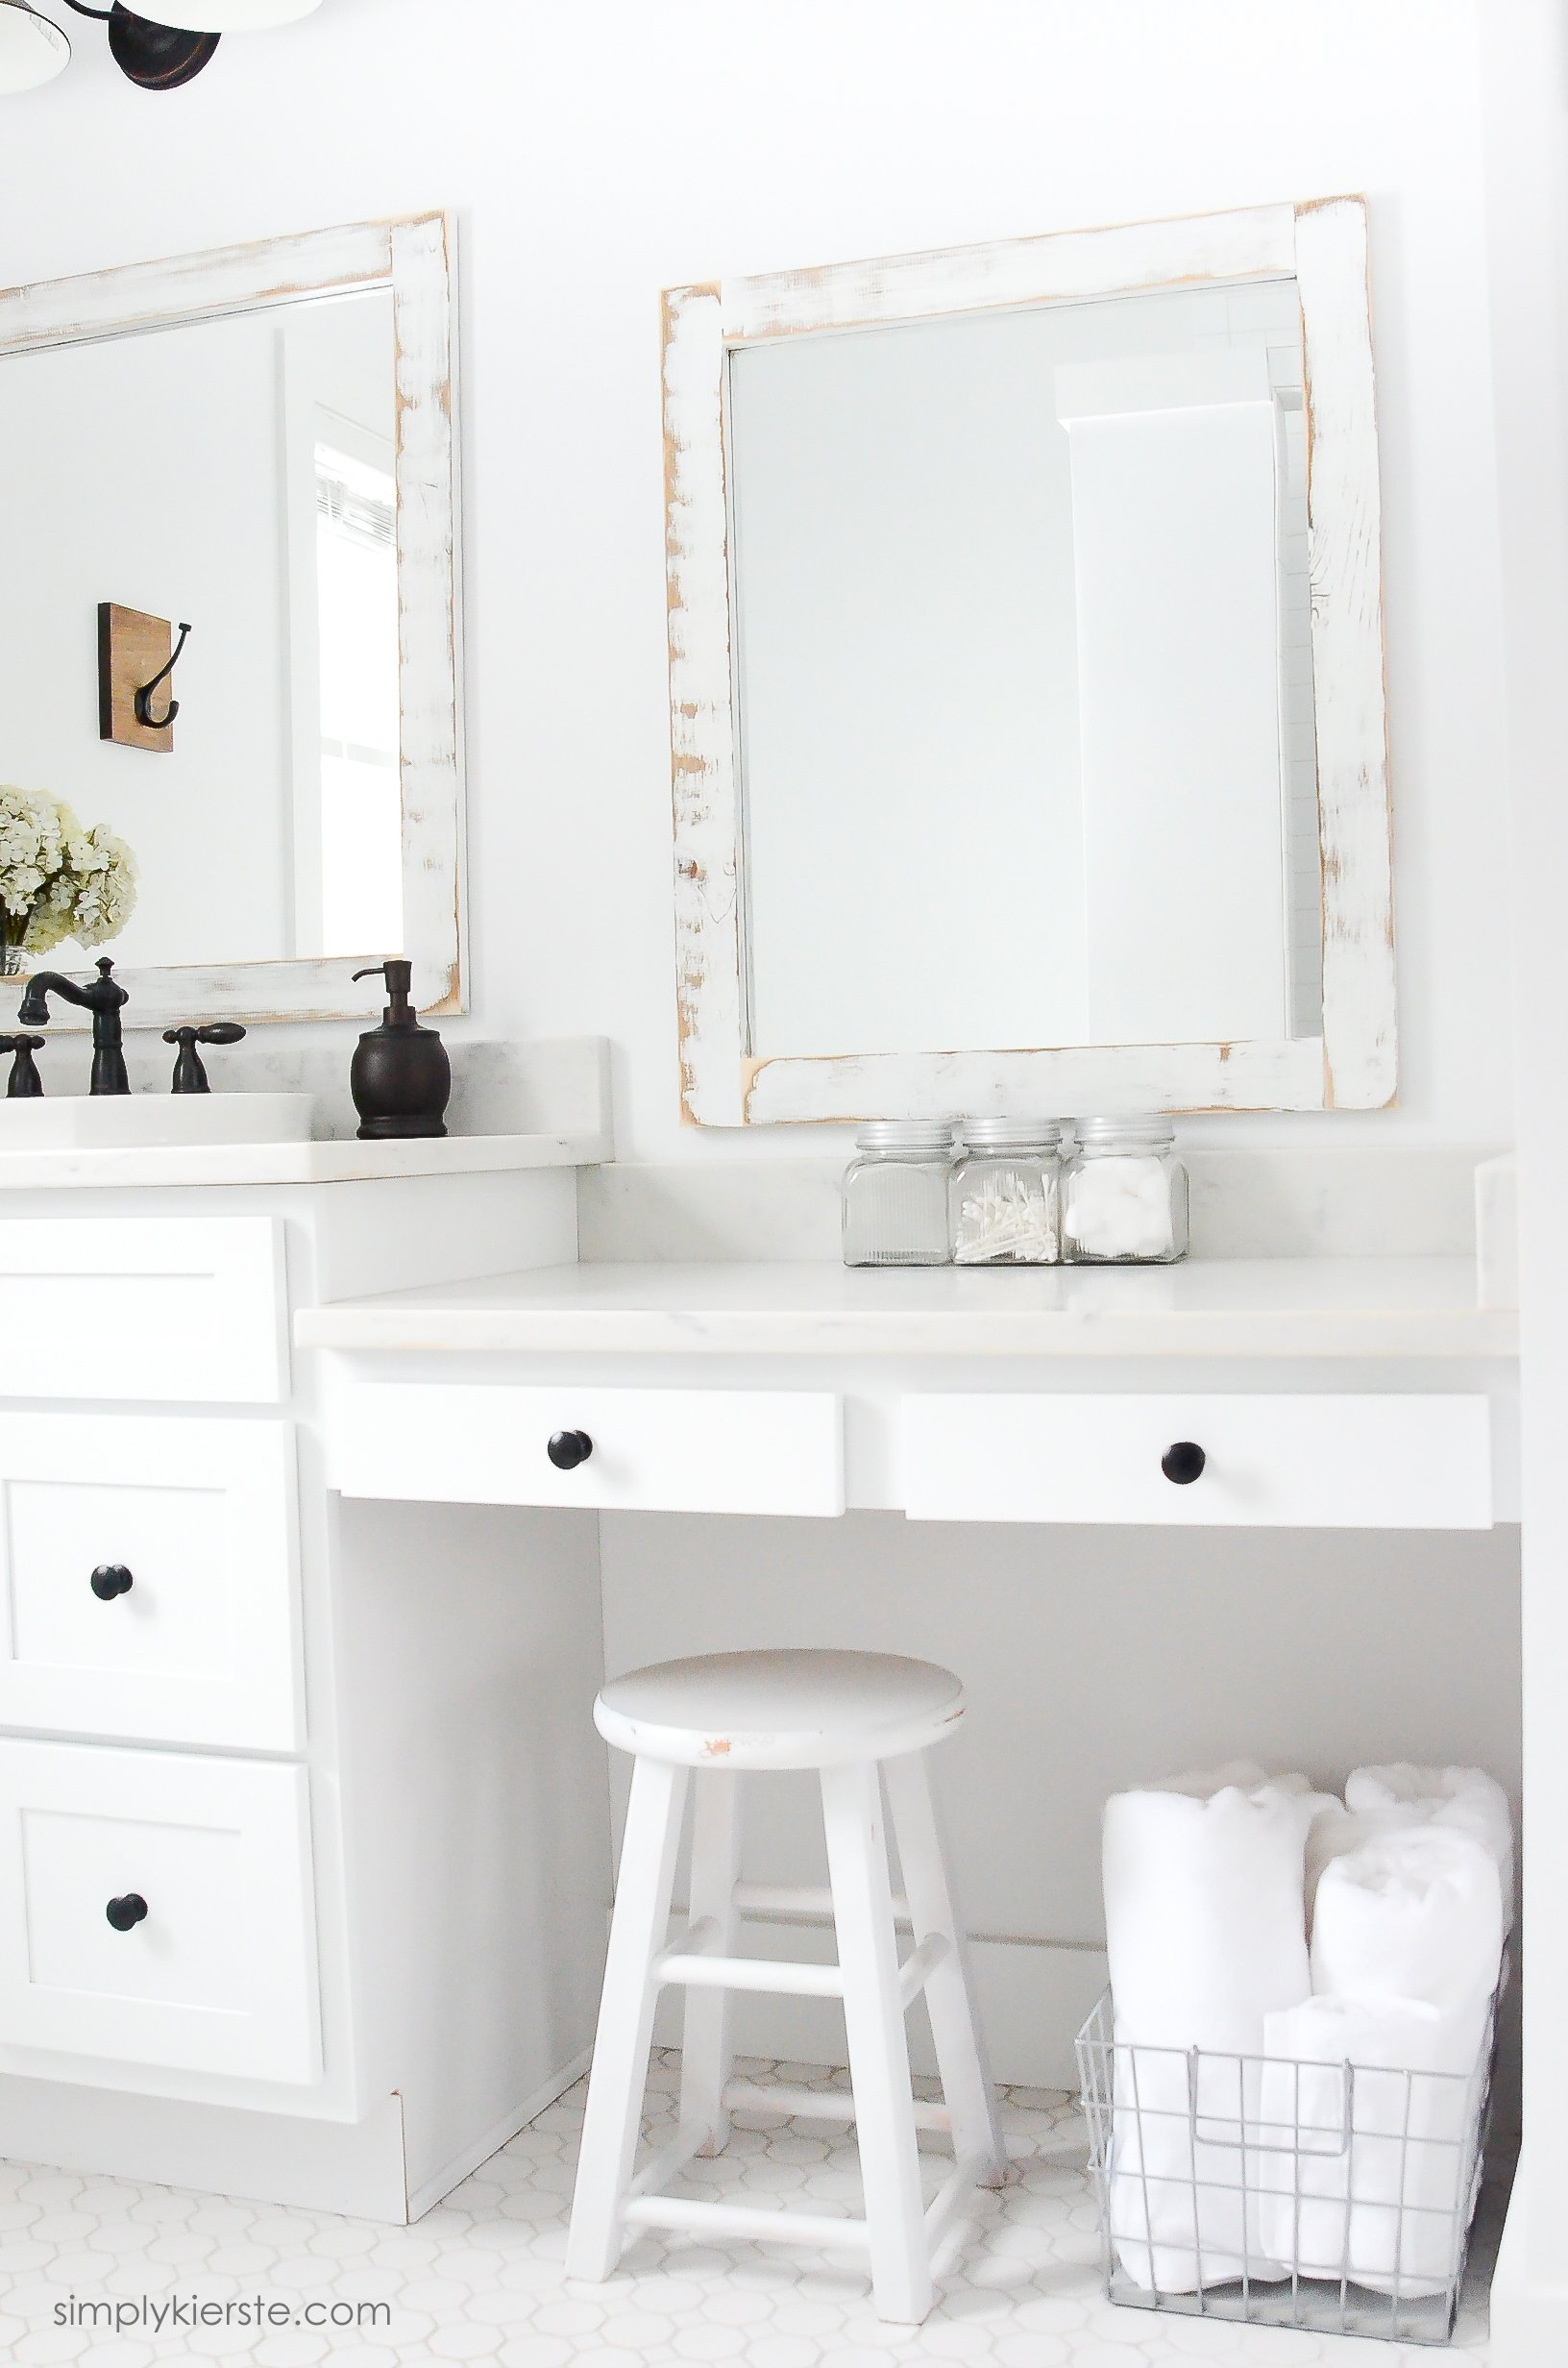 Bathroom Mirror Diy farmhouse bathroom + diy framed mirrors - simply kierste design co.